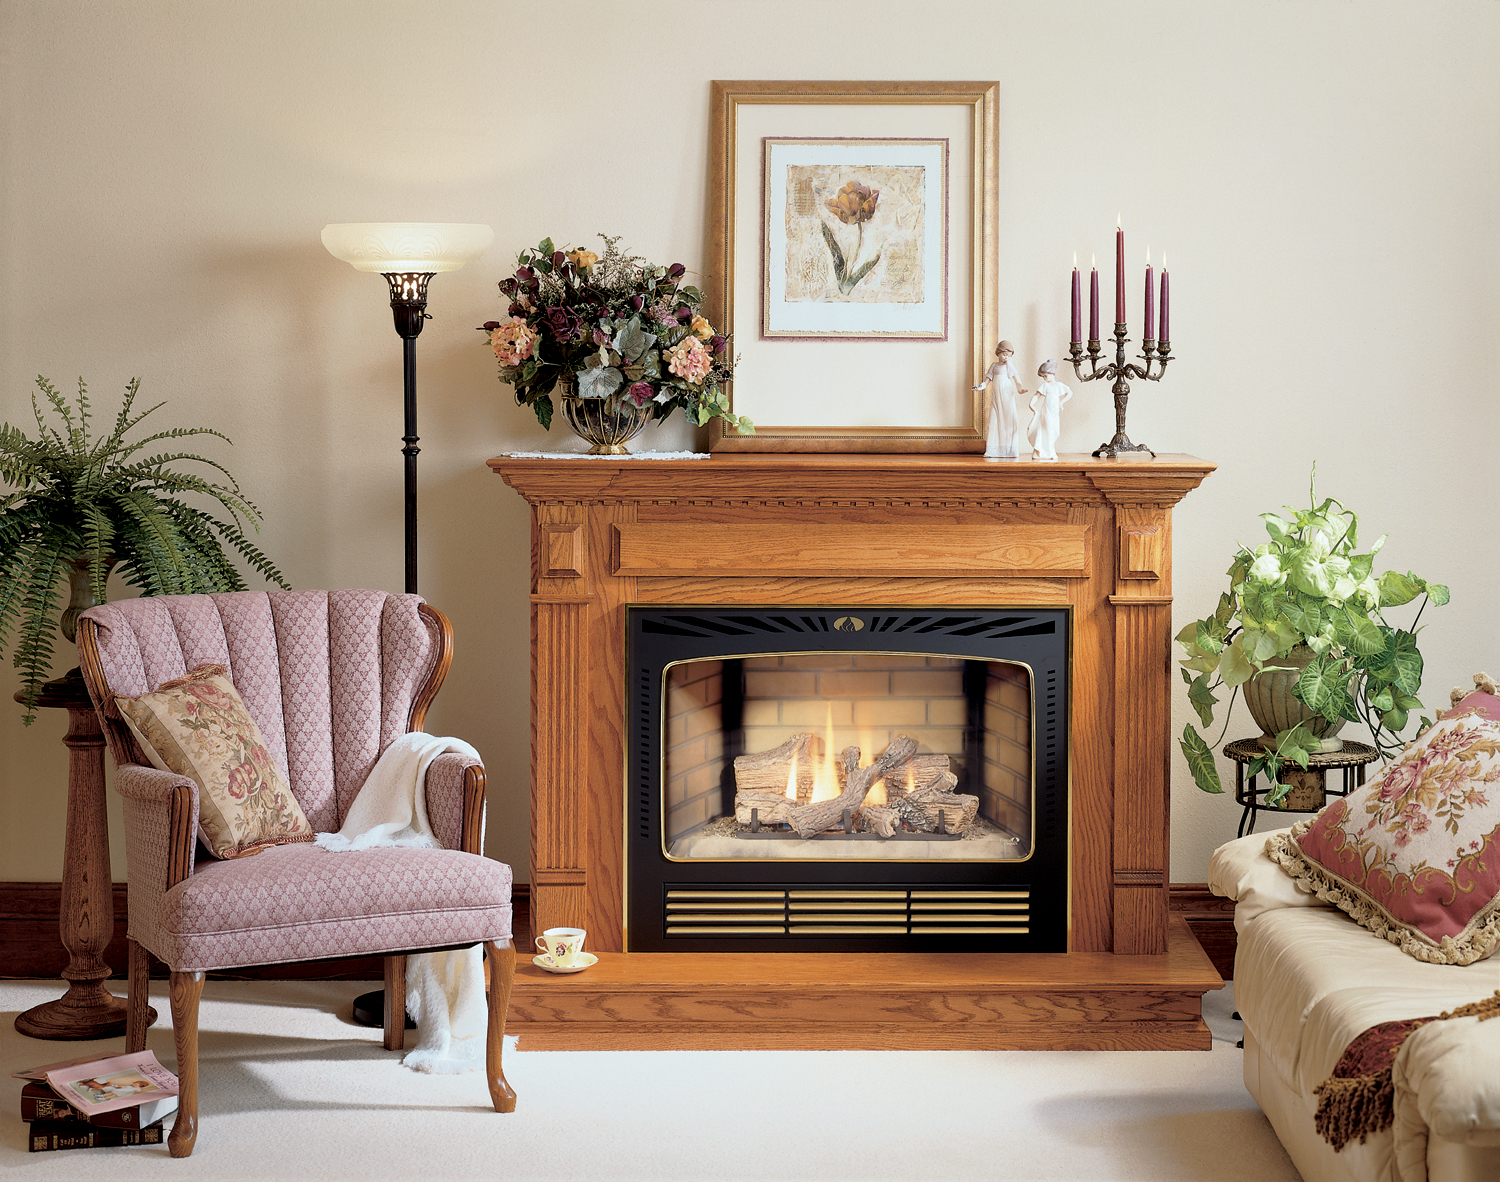 Central fireplace products fireplaces cf 3036 pics 2 for Central fireplace